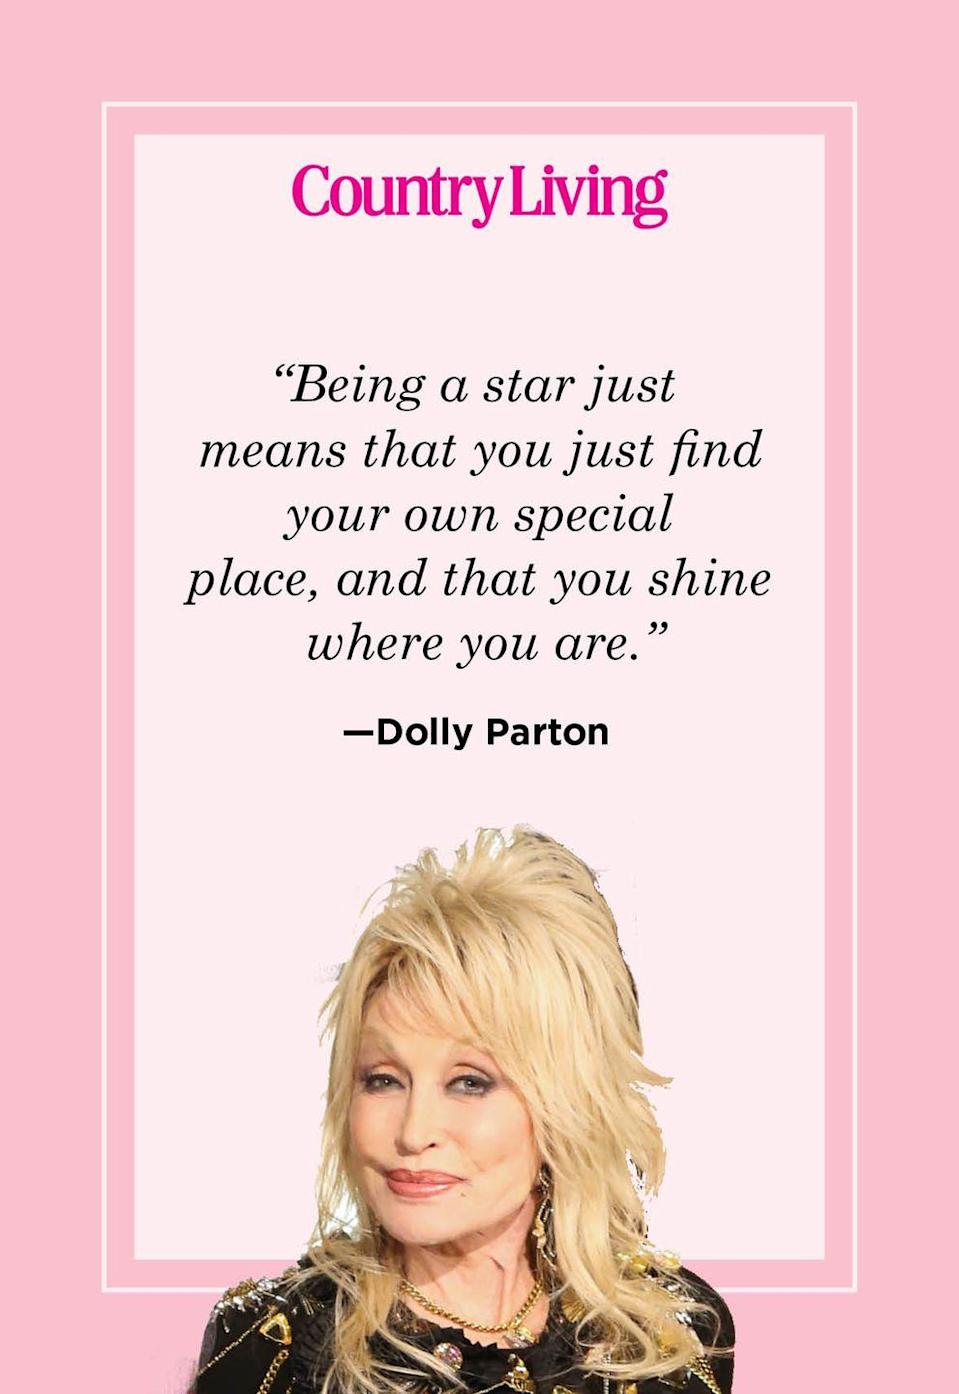 "<p>""Being a star just means that you just find your own special place, and that you shine where you are.""</p>"